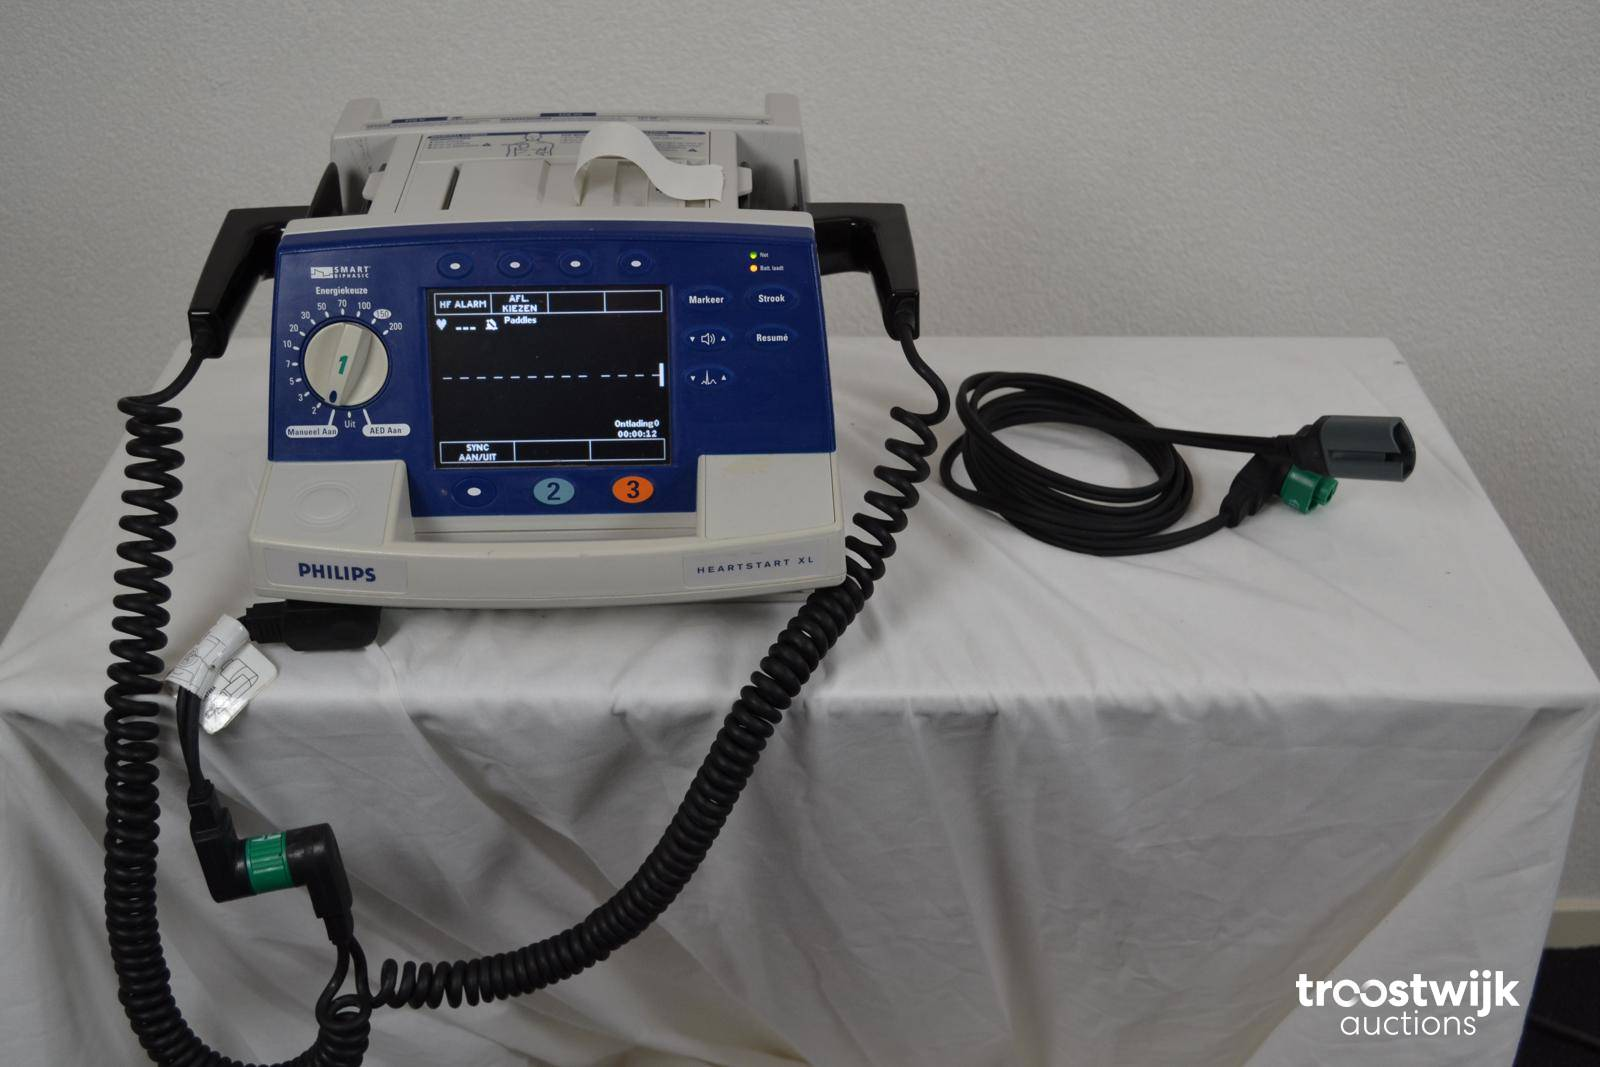 2008 Philips HeartStart XL defibrillator - Troostwijk